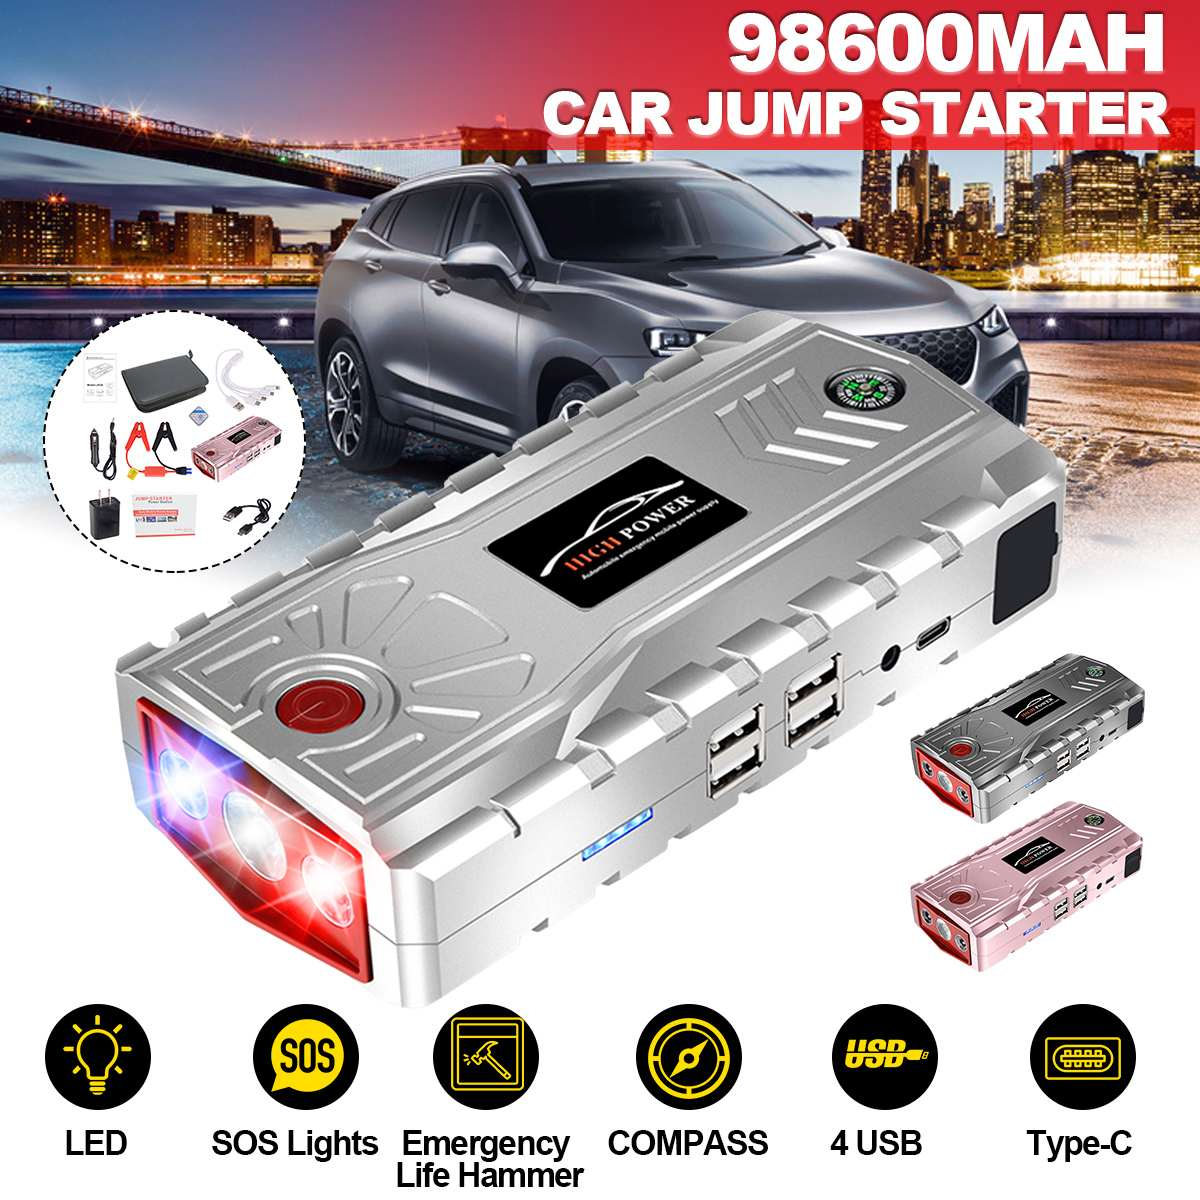 95600mAh Portable Car Jump Starter Powerbank Emergency Battery Booster Digital Charger With LED Flashlight 4 USB Type C Port